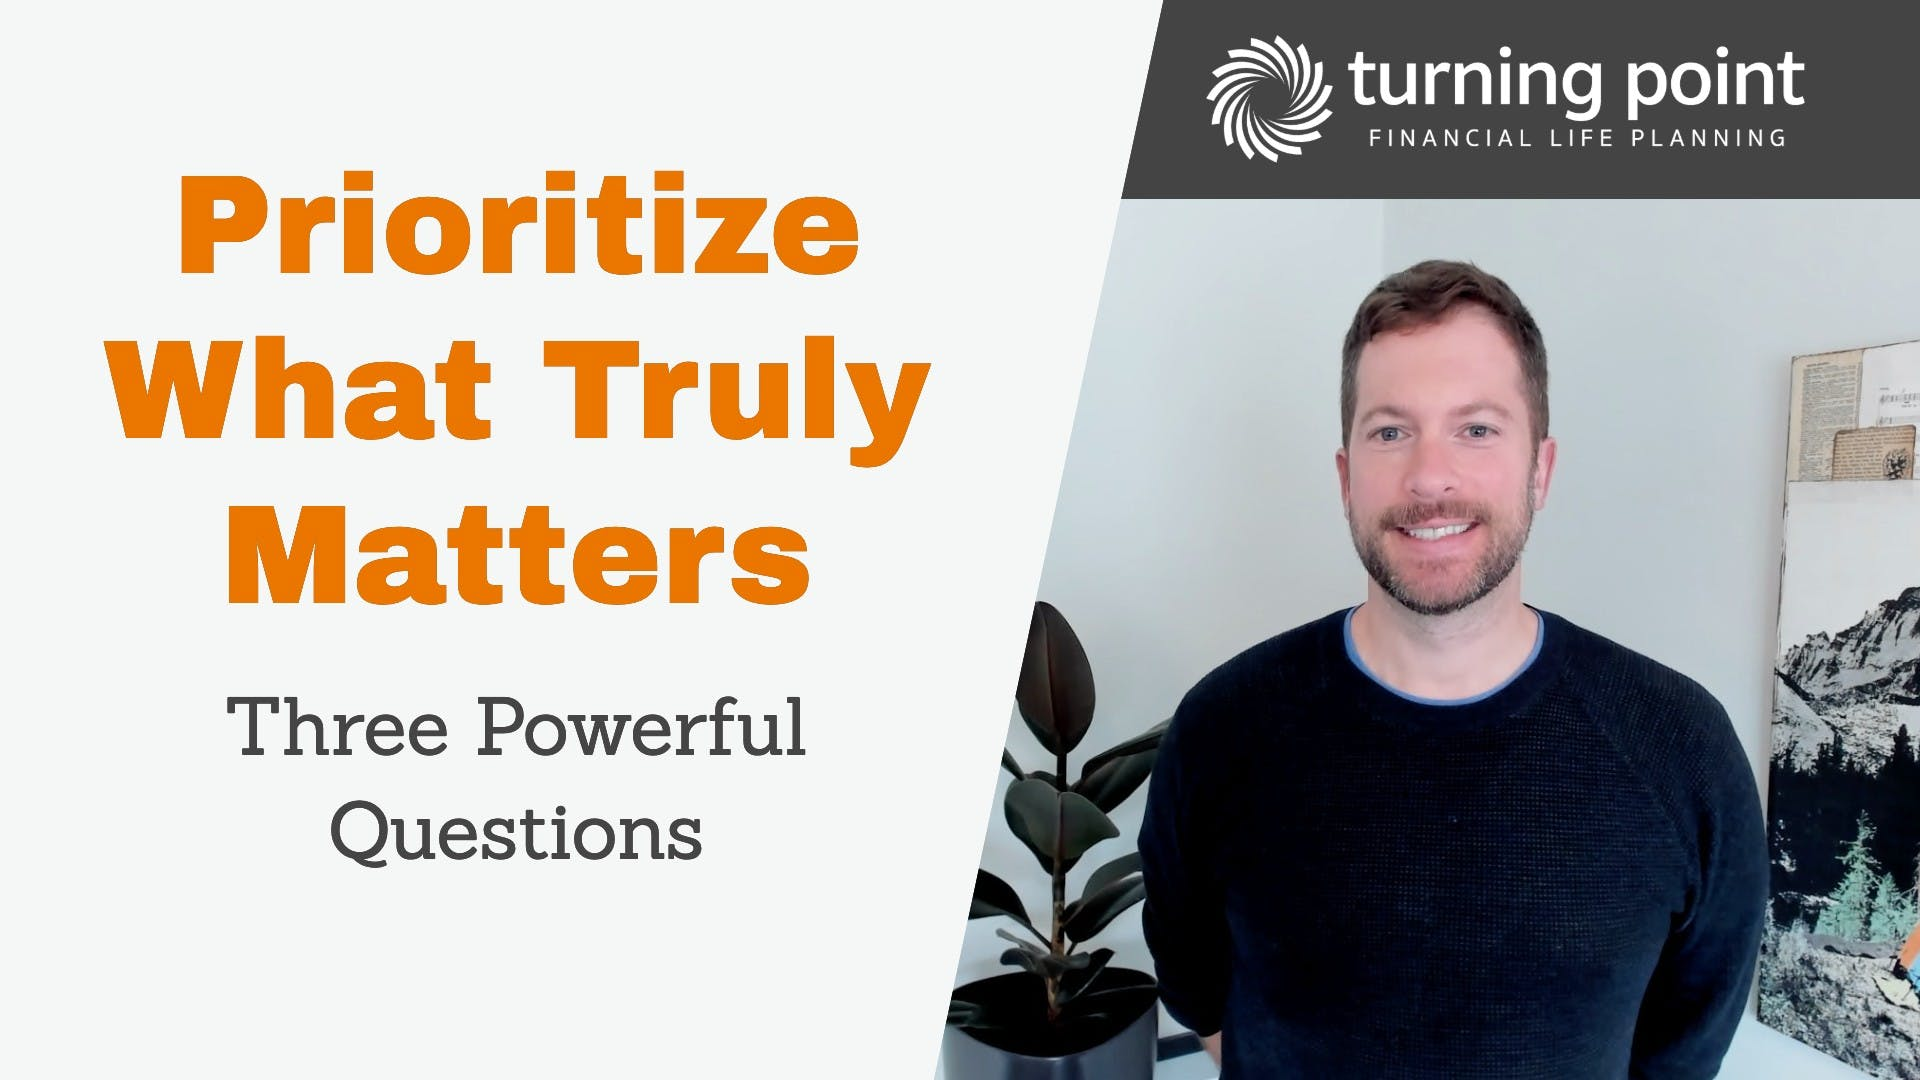 Prioritize what truly matters - three powerful questions.